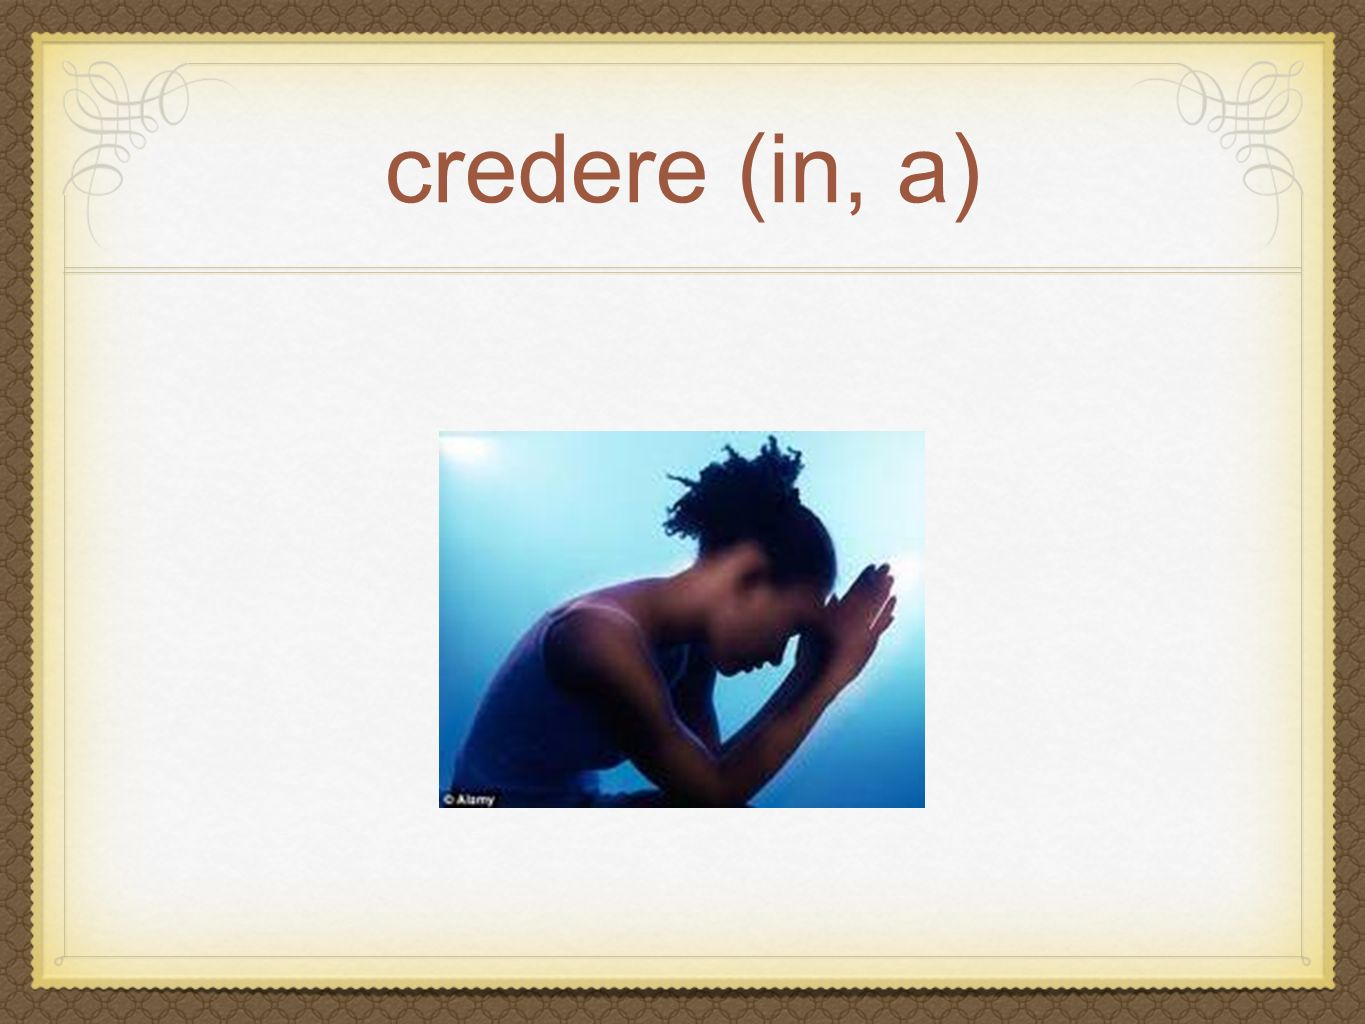 credere (in, a)